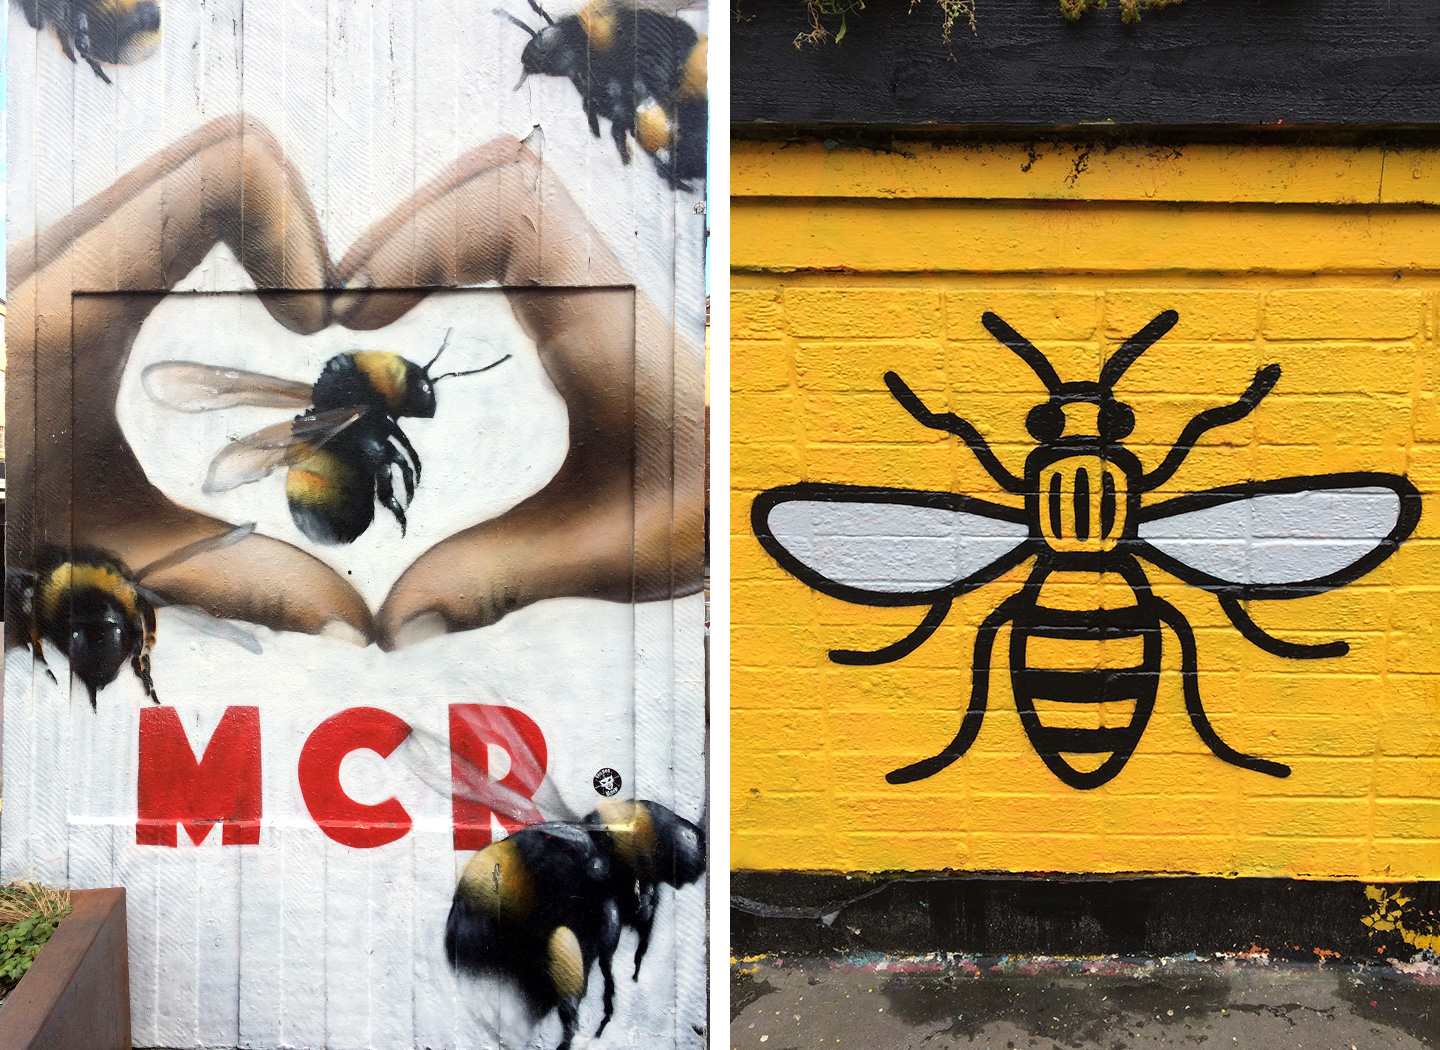 Manchester bees street art in the Northern Quarter